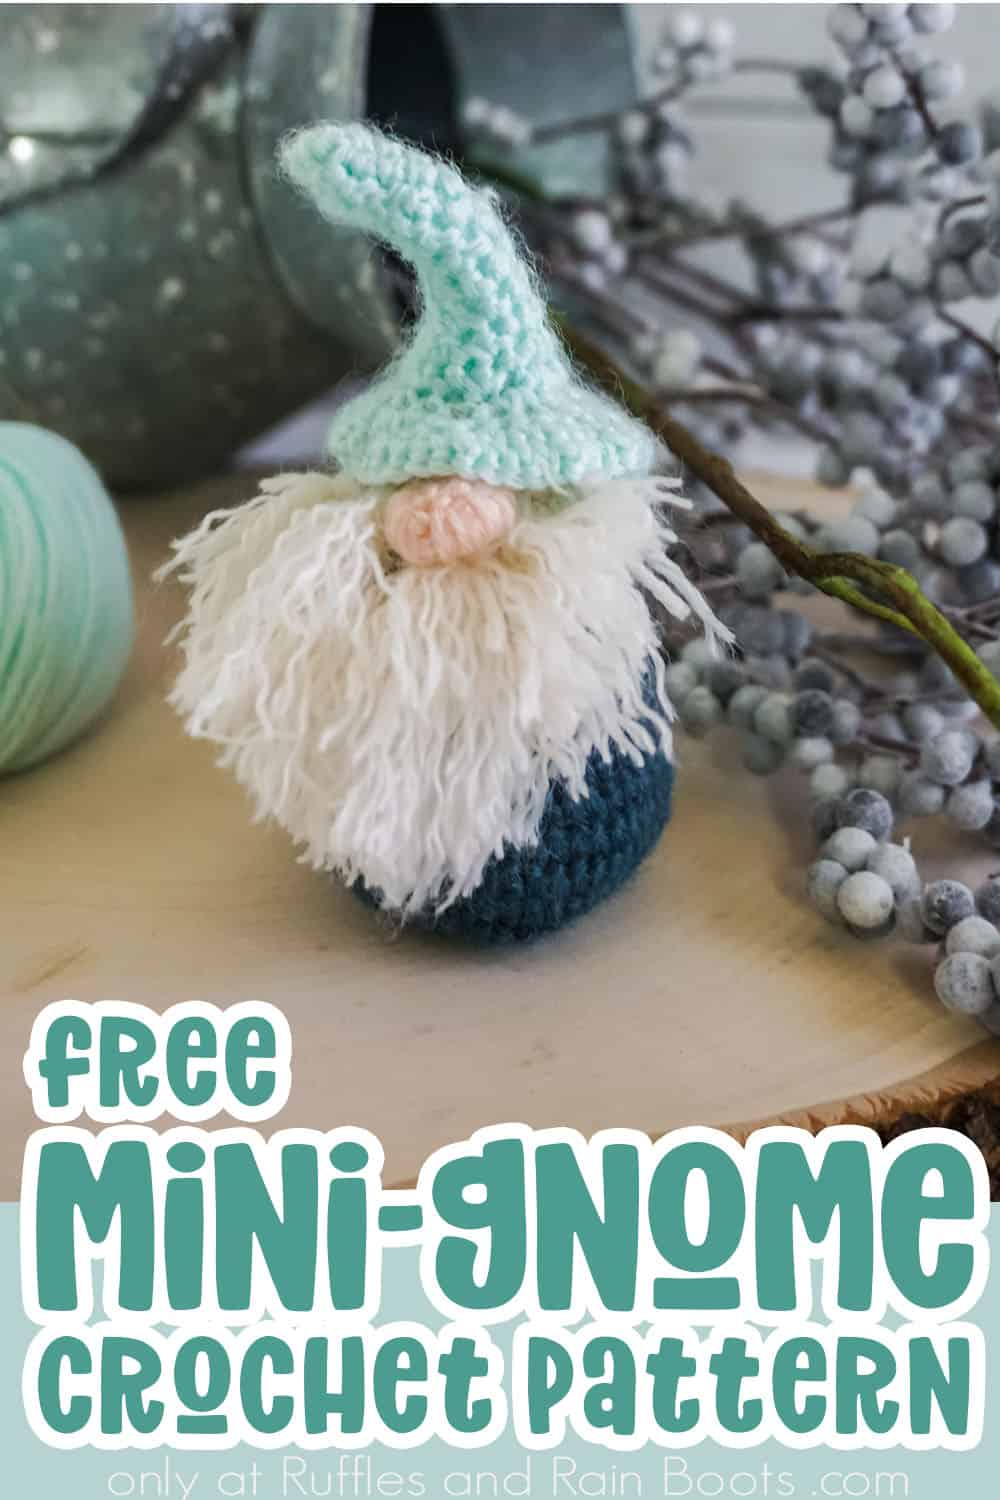 vertical image of an adorable gnome with text which reads free mini gnome crochet pattern from ruffles and rain boots